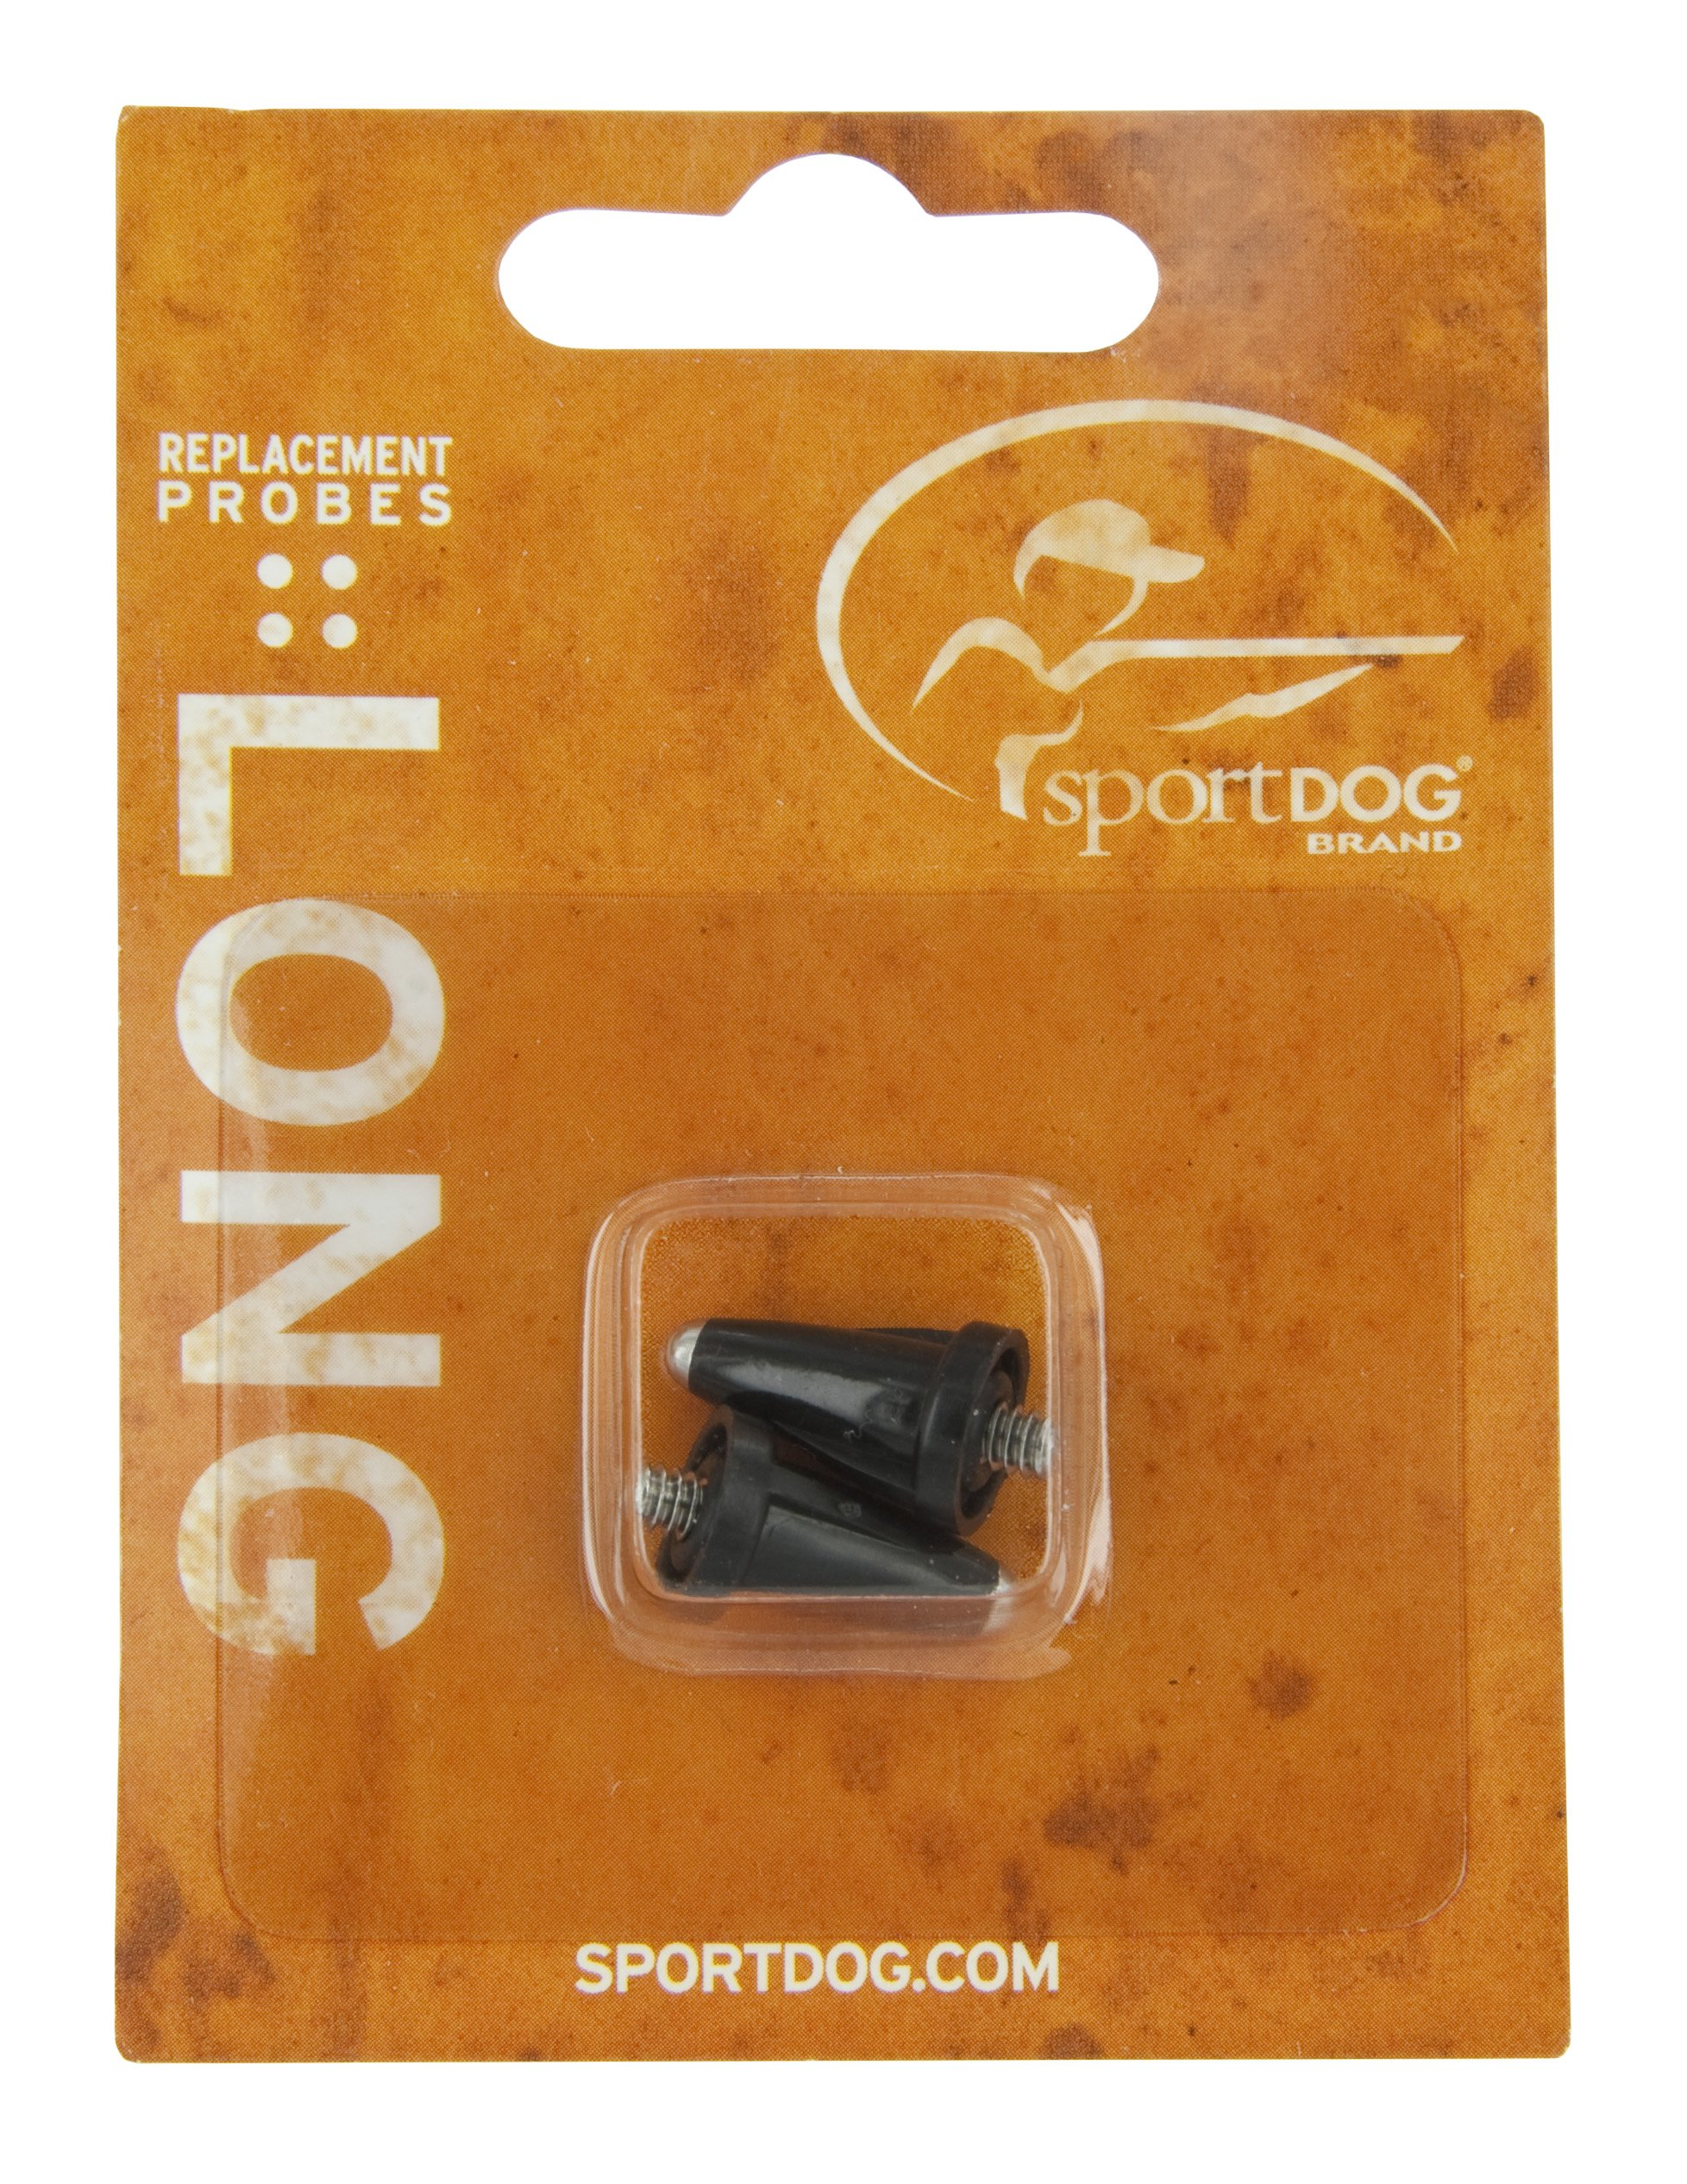 SportDOG Brand Long Contact Points - 5/8 Inch Replacement Probes for SportDOG E-Collars - Perfect for Long Hair Dogs by SportDOG Brand